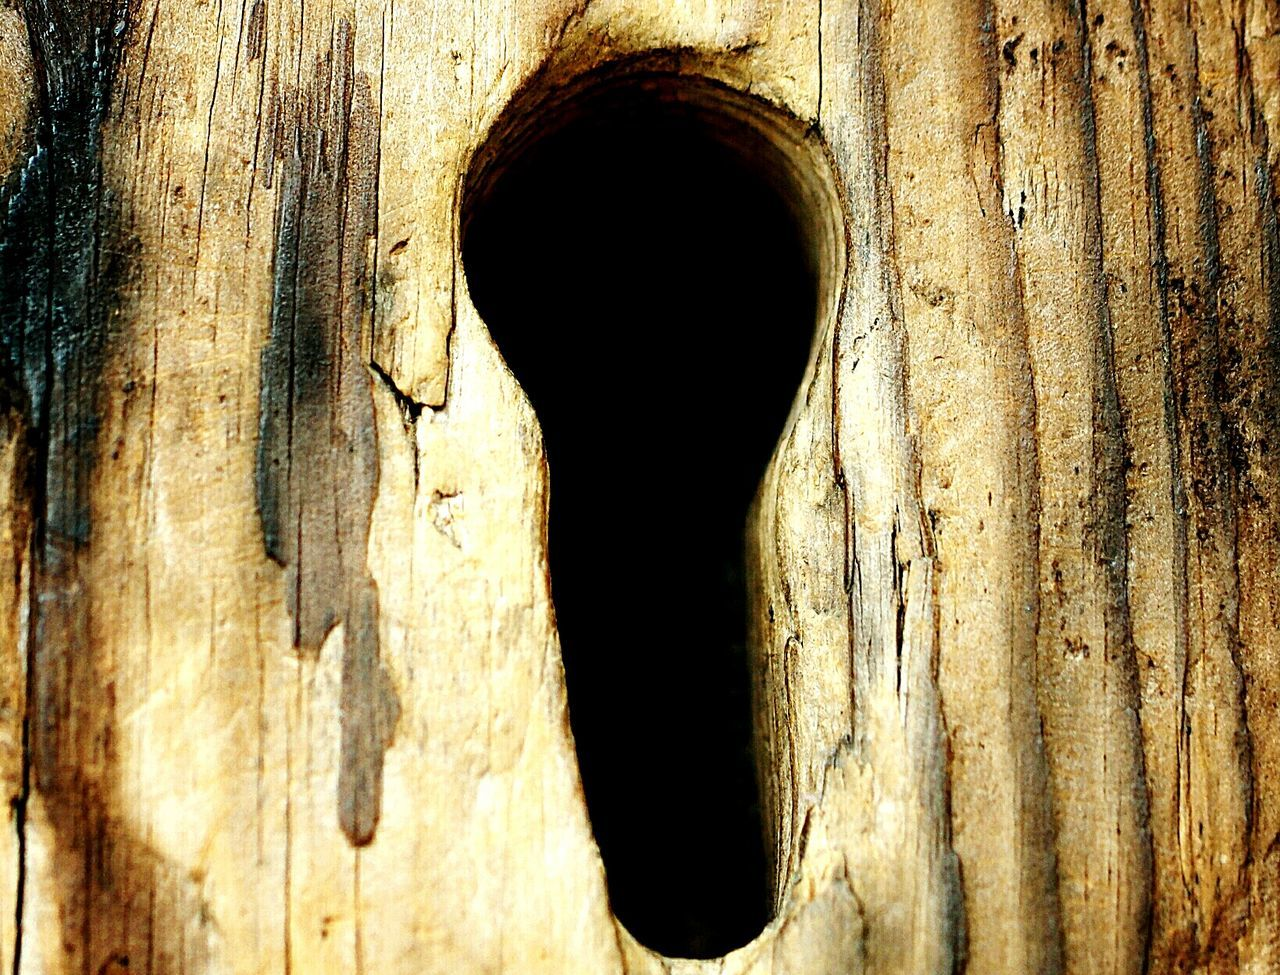 hole, wood - material, textured, day, tree trunk, no people, close-up, built structure, outdoors, architecture, hinge, nature